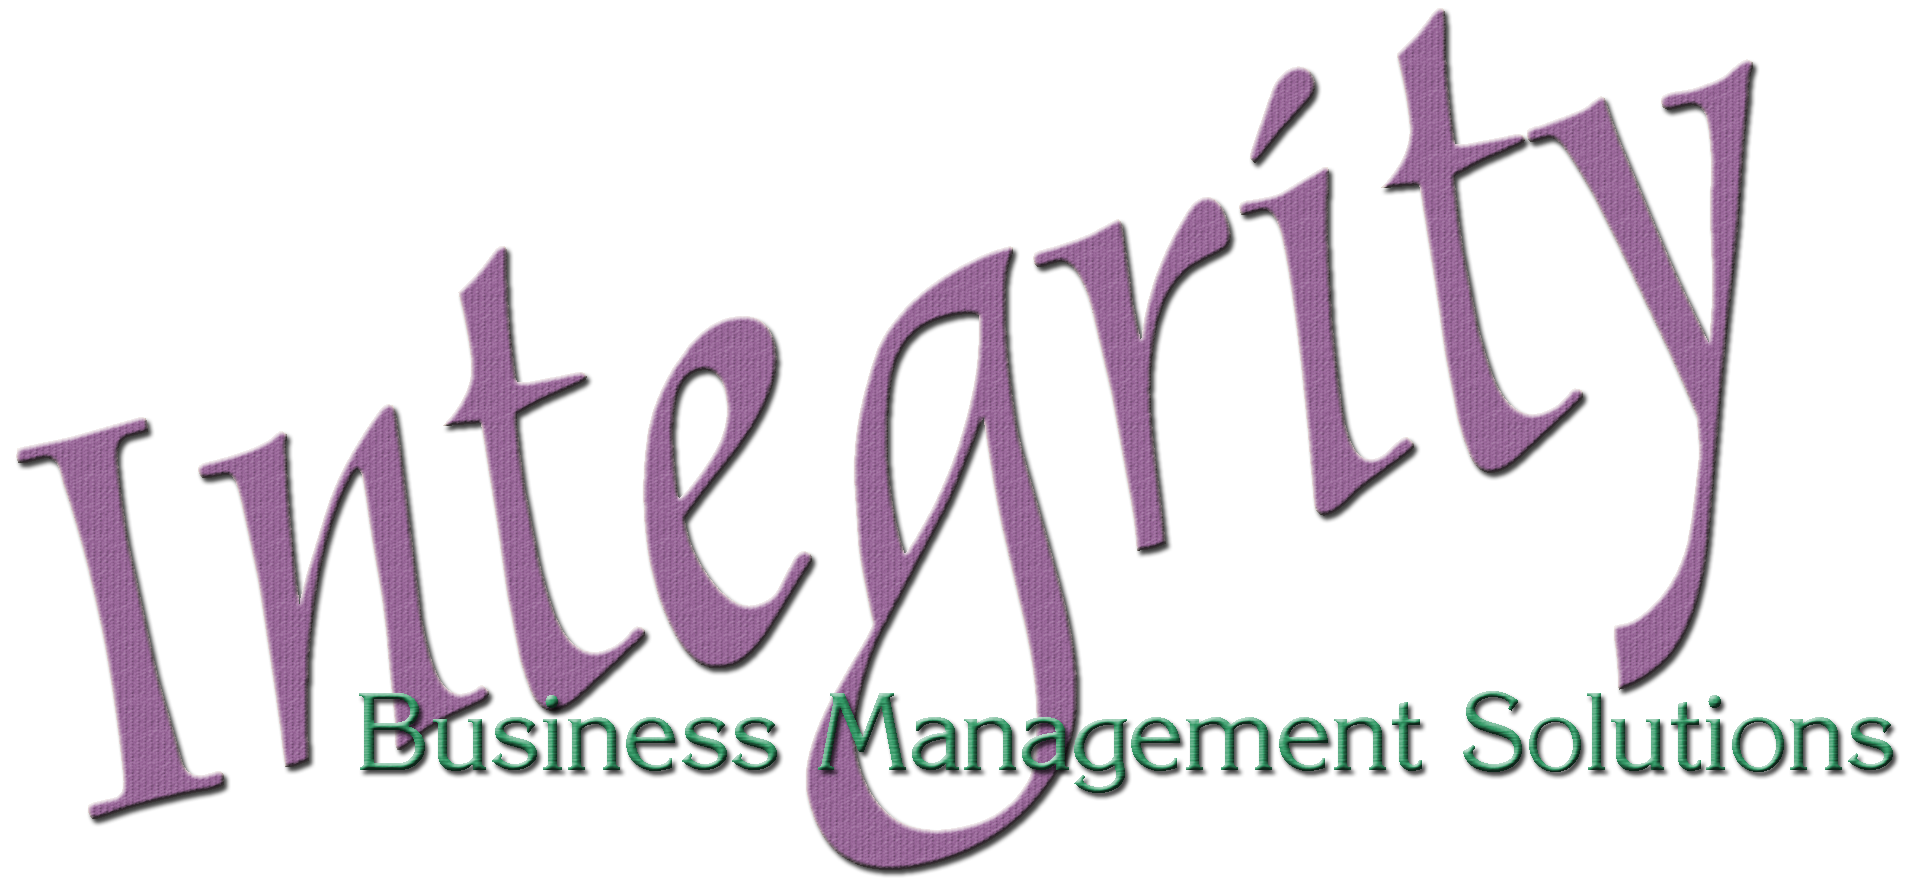 Integrity Business Management Solutions